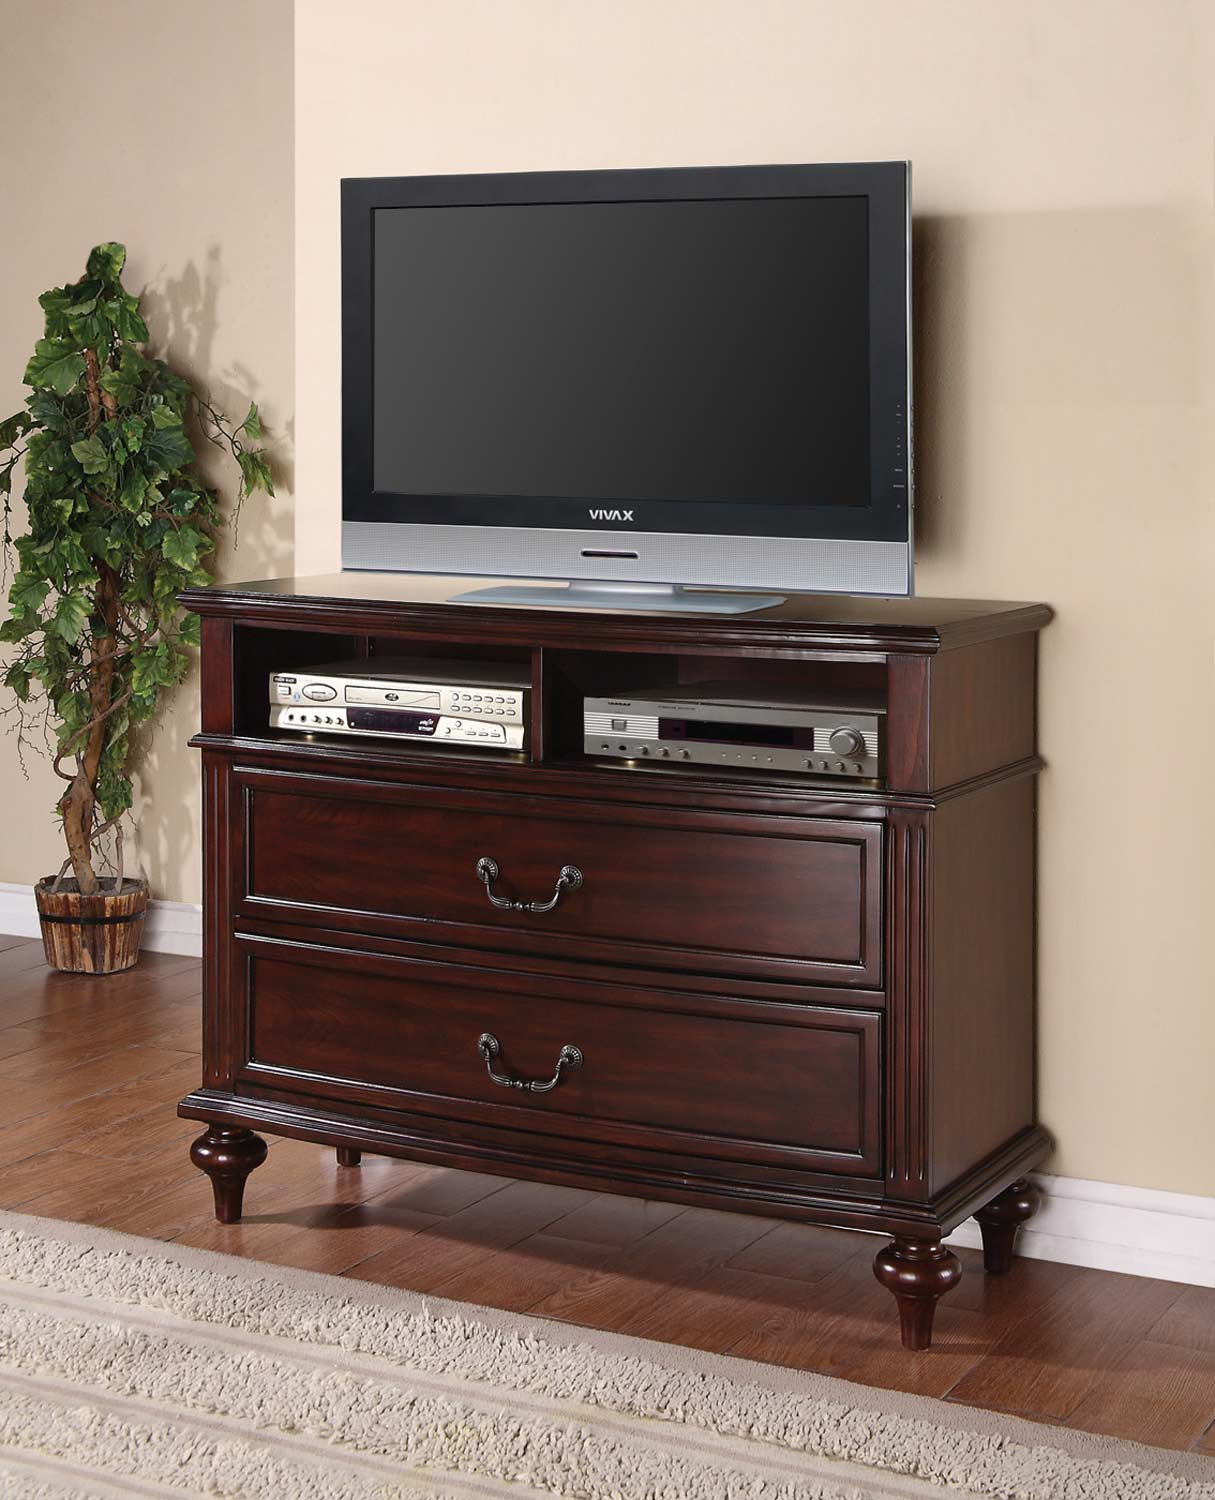 Coaster Emily Media Chest - Brown Cherry